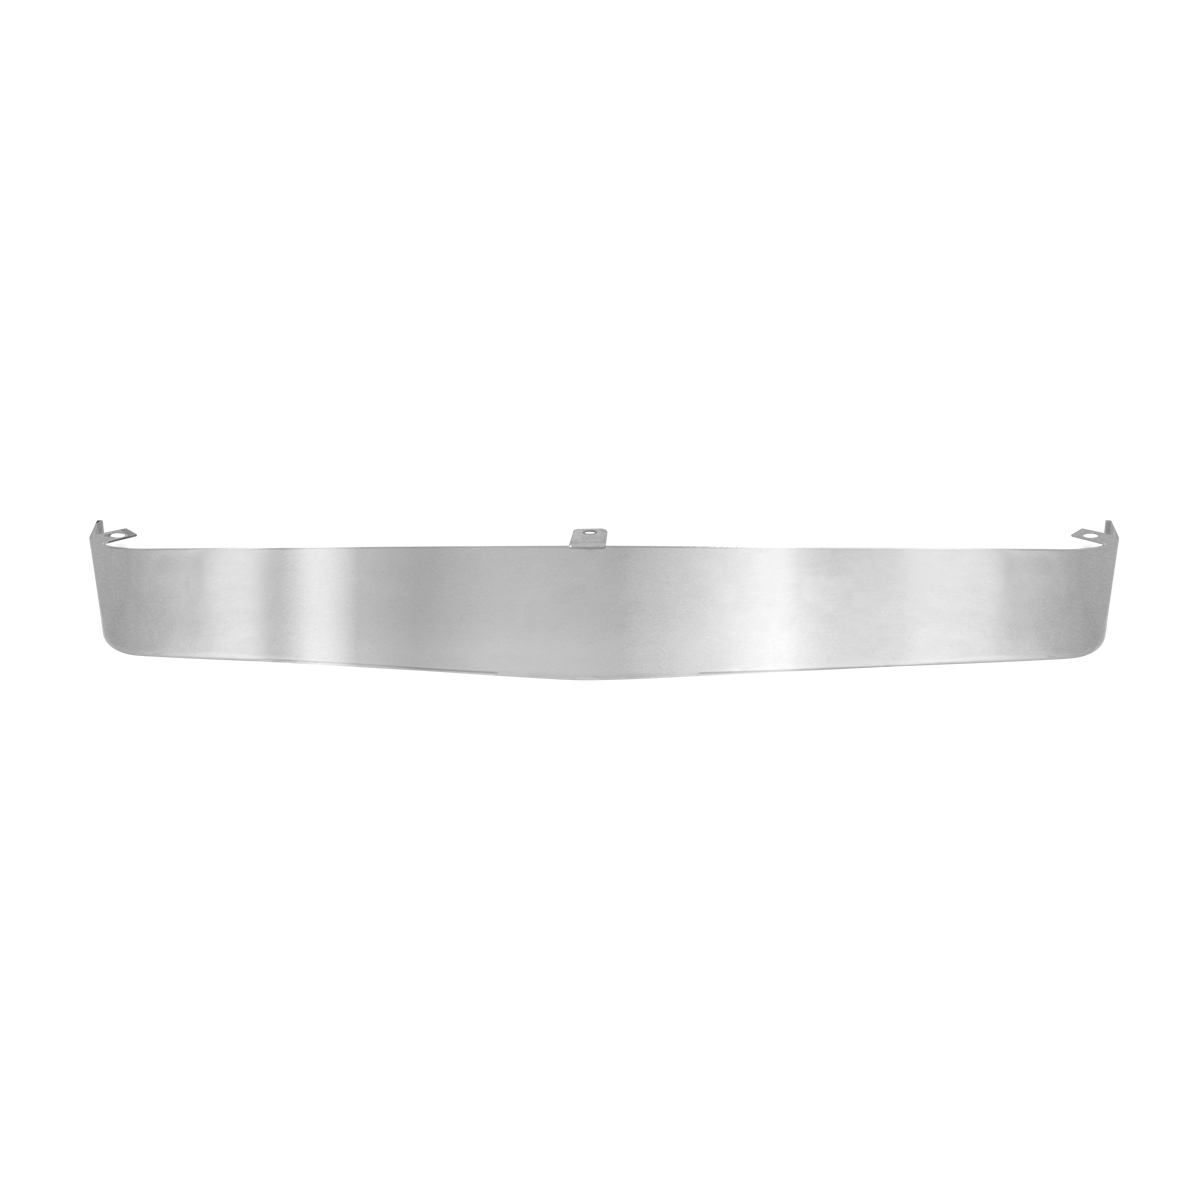 Headlight Visor for FL & KW